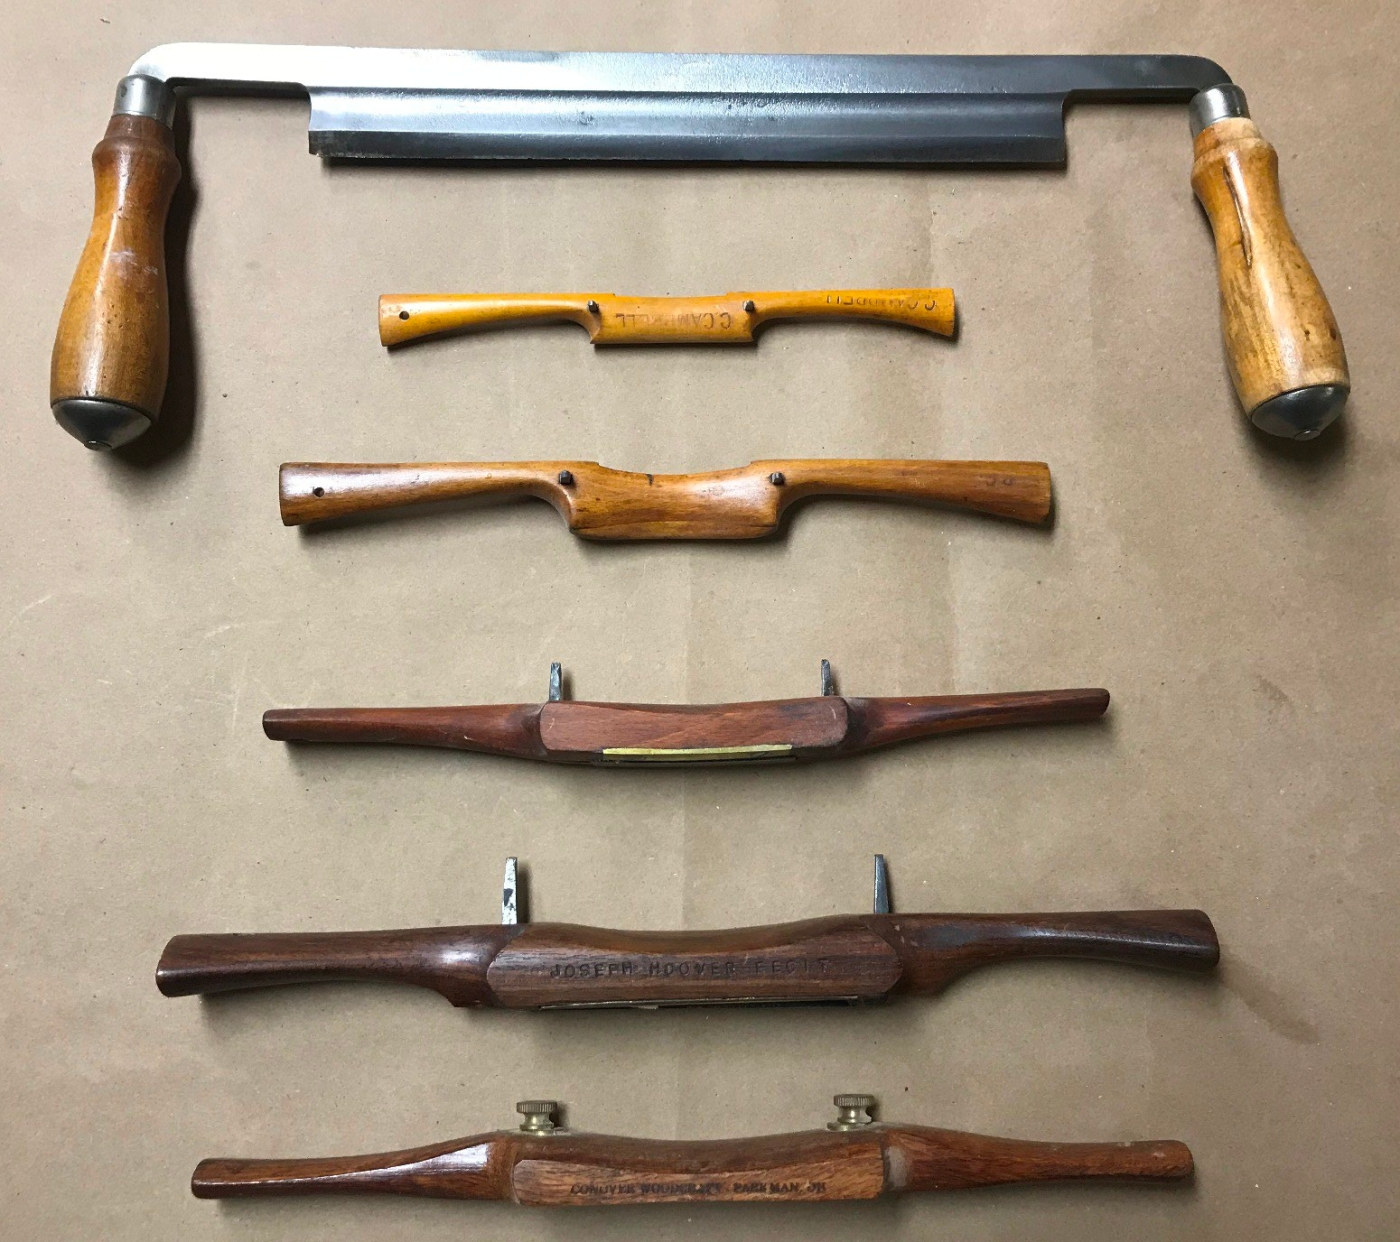 A drawknife and selection spokeshaves